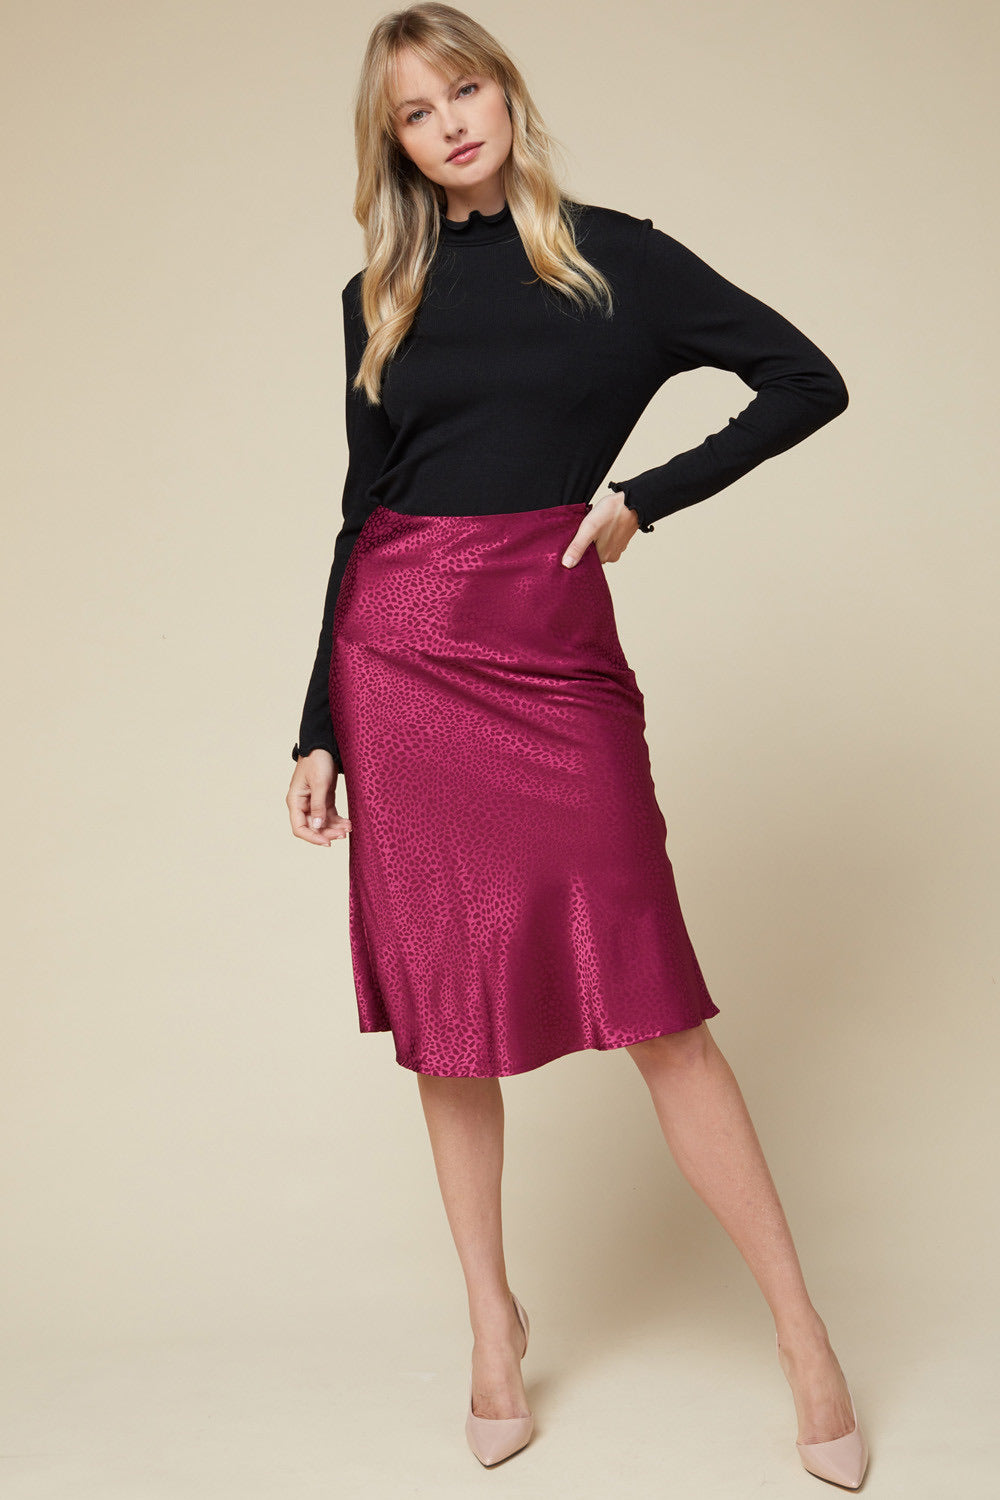 Strut Your Stuff Satin Midi Skirt - Wine